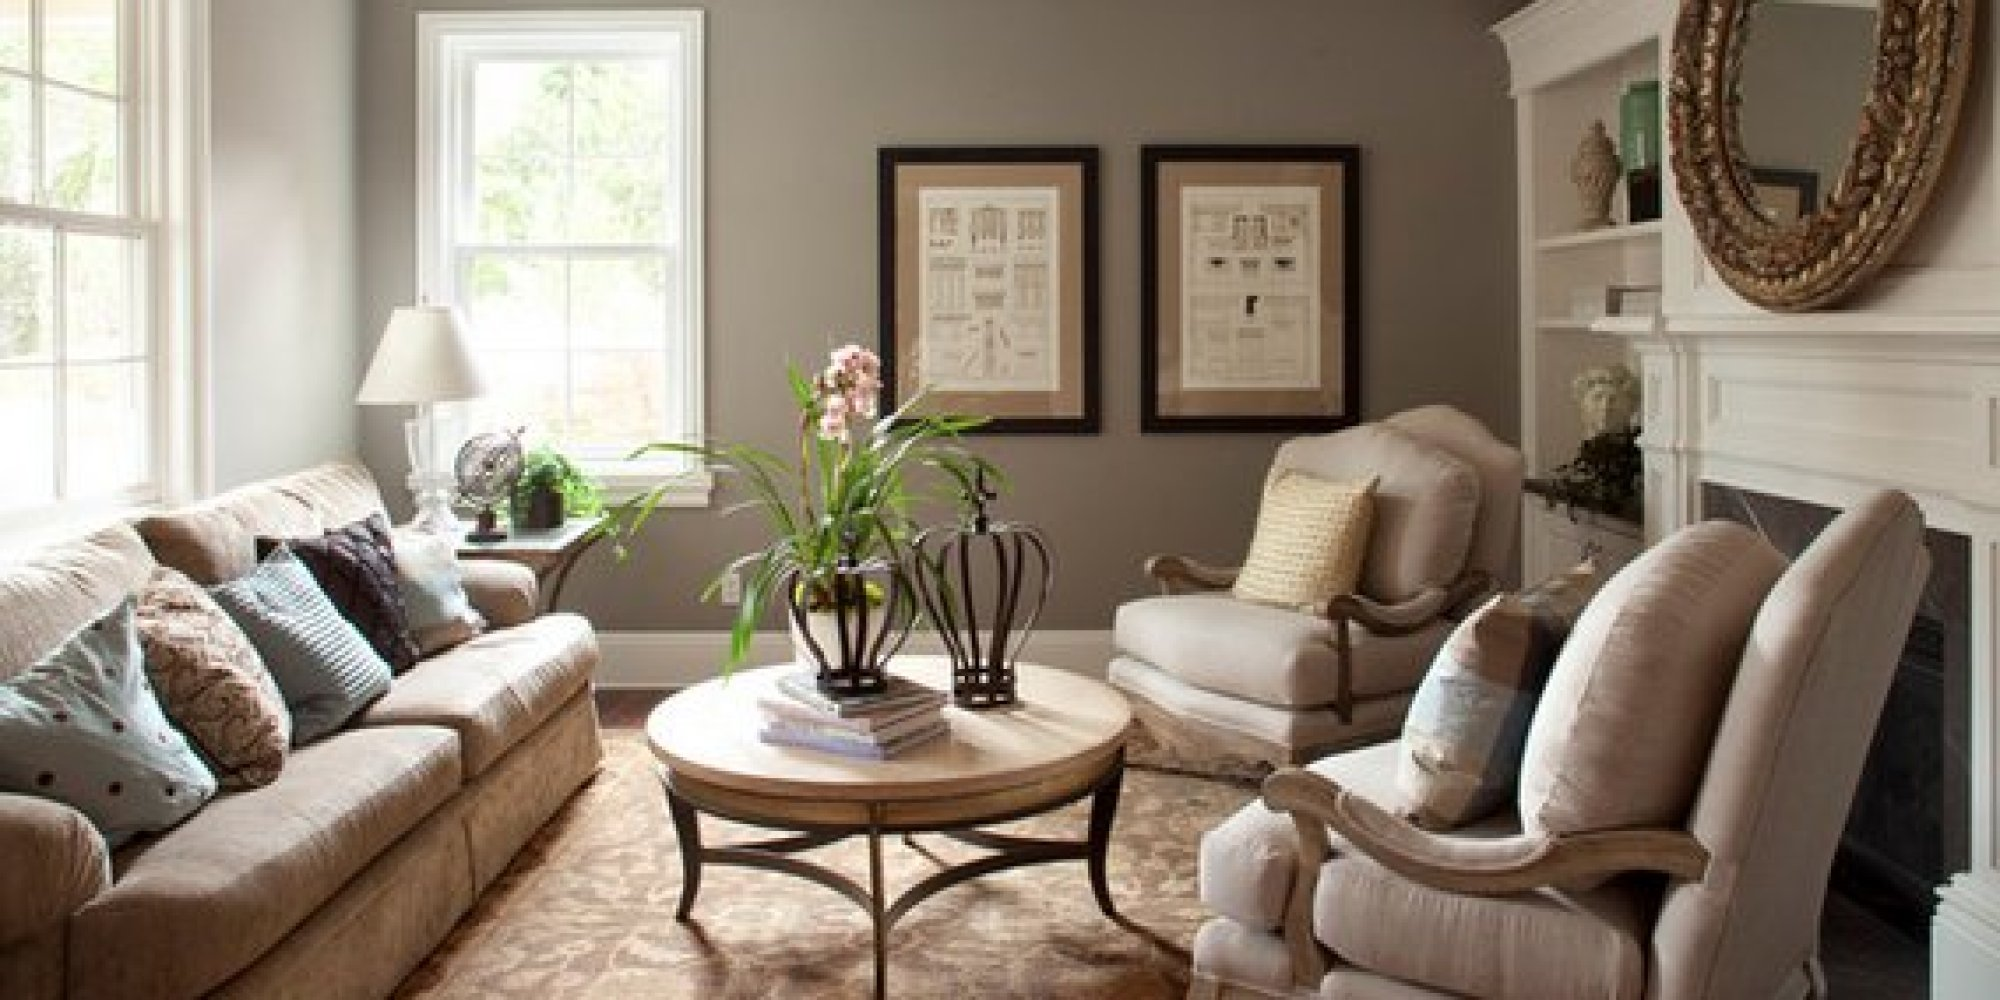 Paint Choices For Living Room The 6 Best Paint Colors That Work In Any Home Huffpost